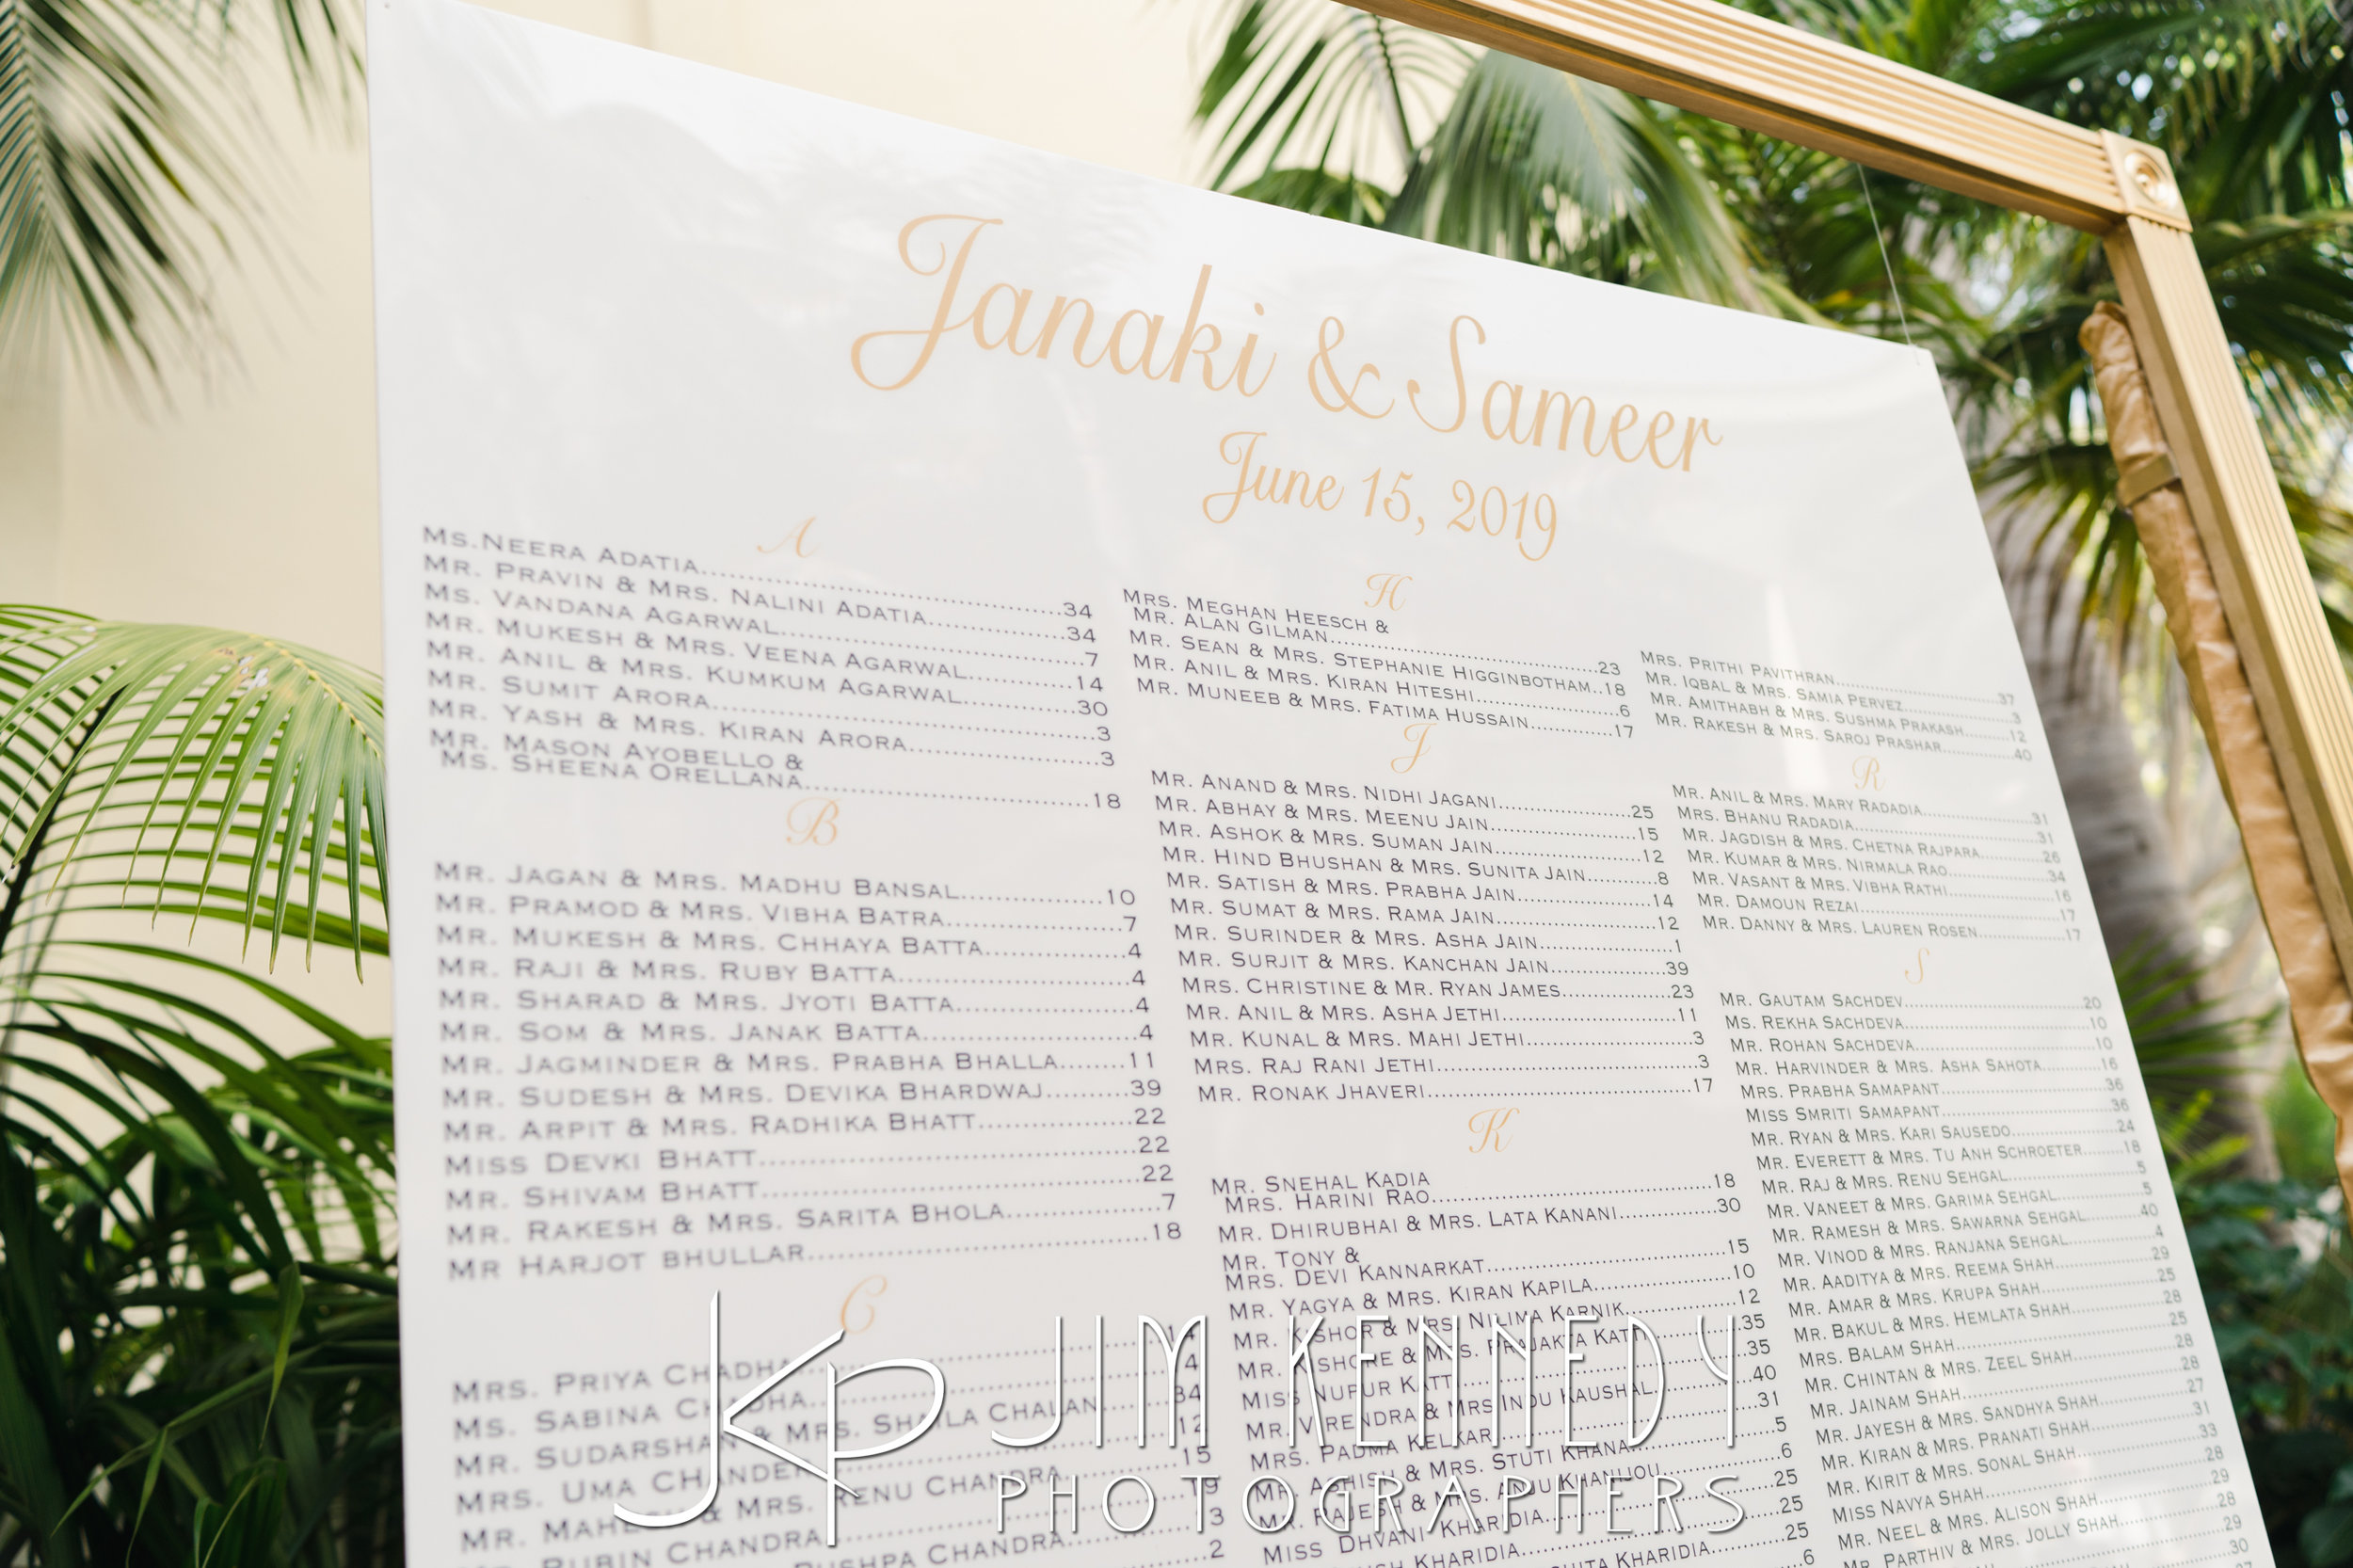 ritz-carlton-wedding-janaki-sameer_0218.JPG